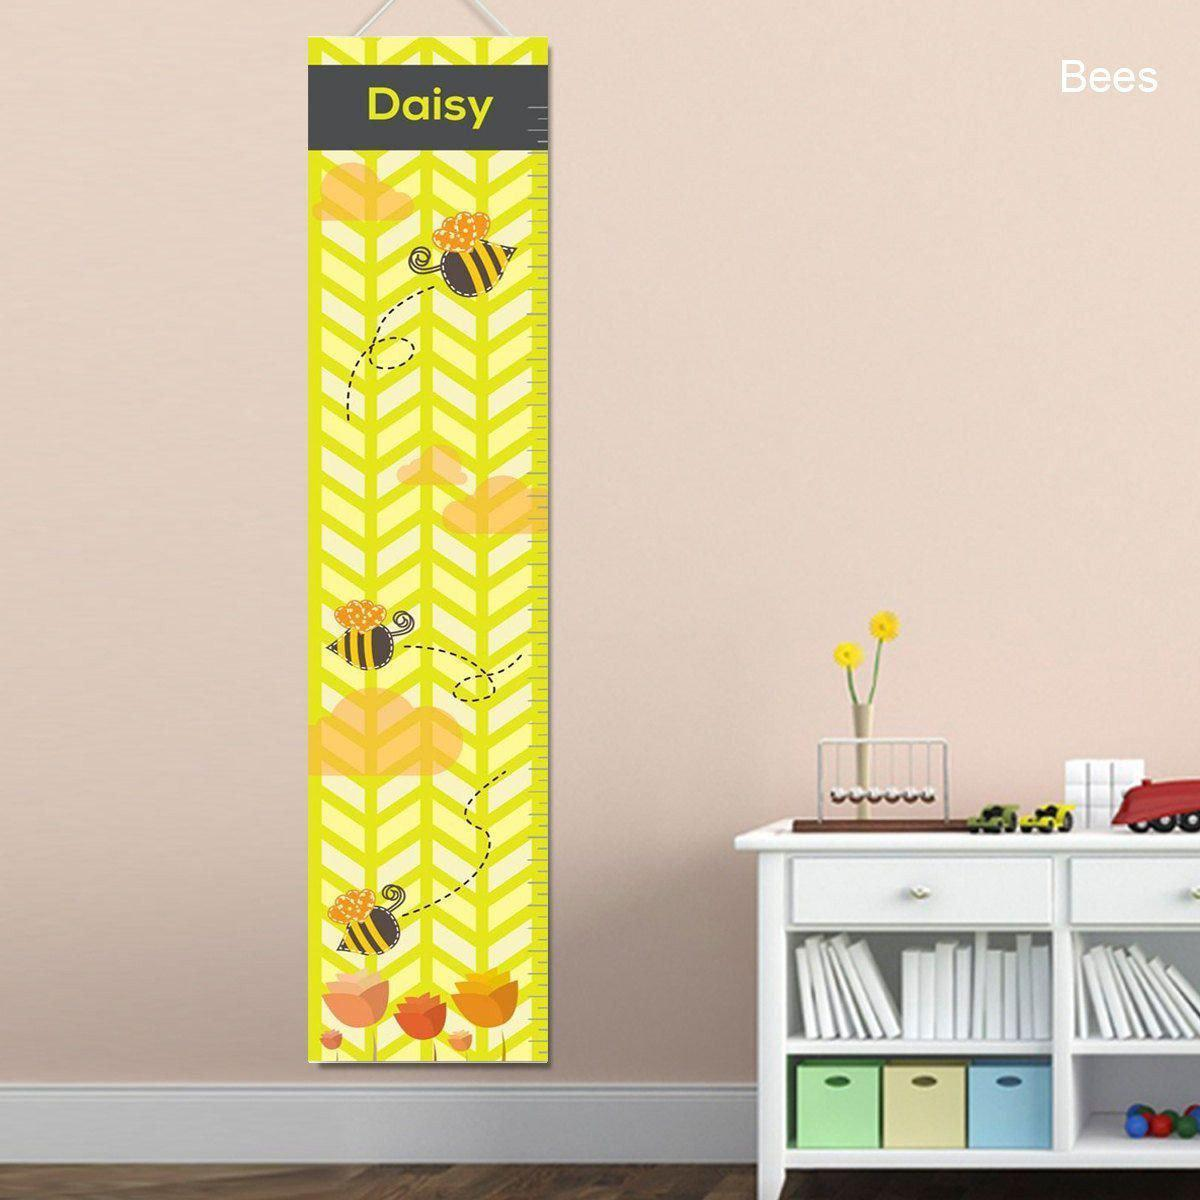 Personalized Growth Charts For Kids - Animal Collection